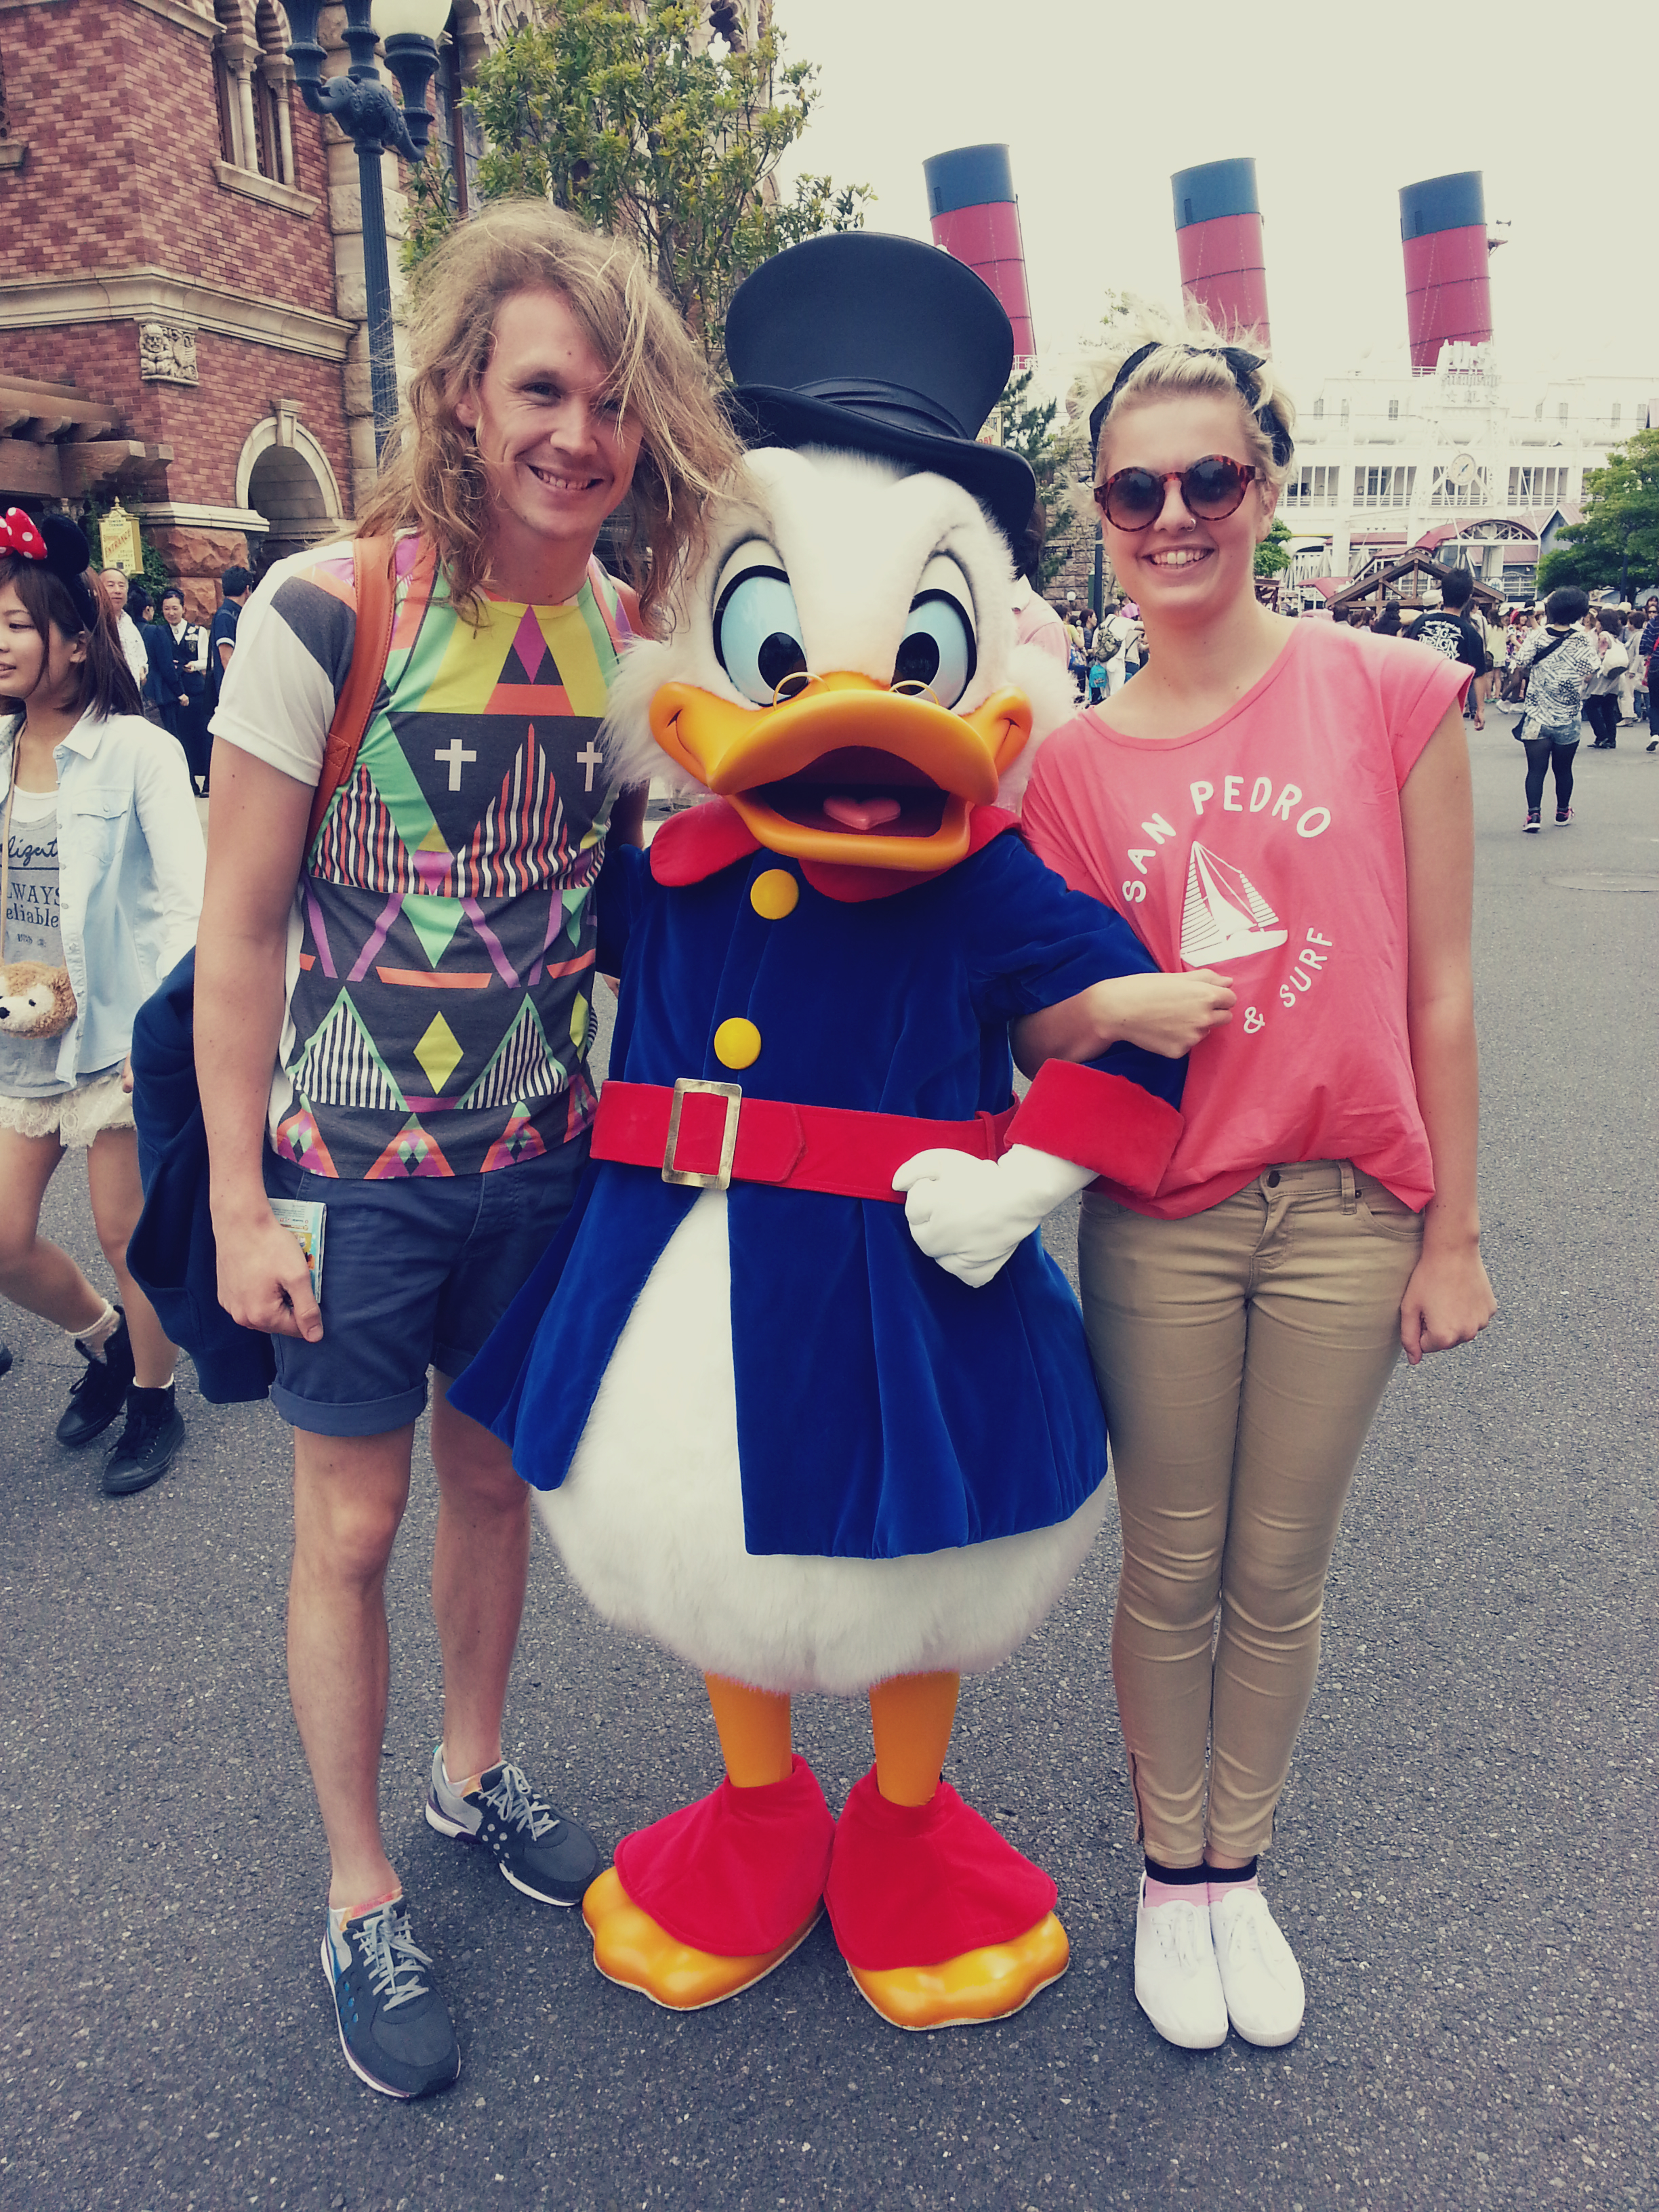 We met Scrooge...even though we thought he was Donald Duck.